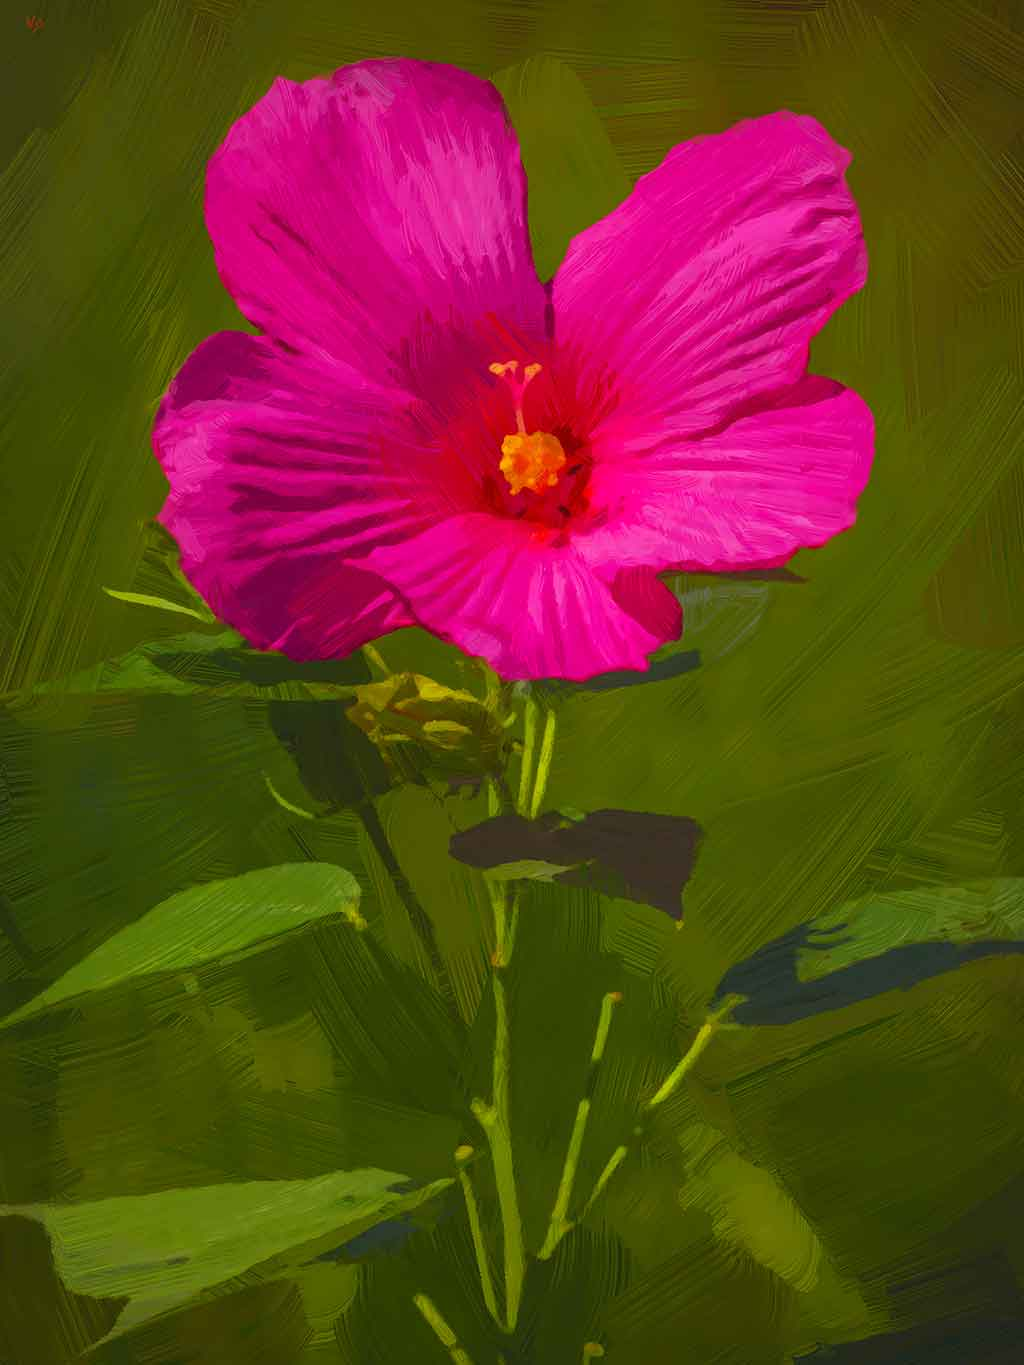 Red Swamp Hibiscus Flower on green, digital Oil Painting on Art Canvas Print by Wieslaw Sadurski